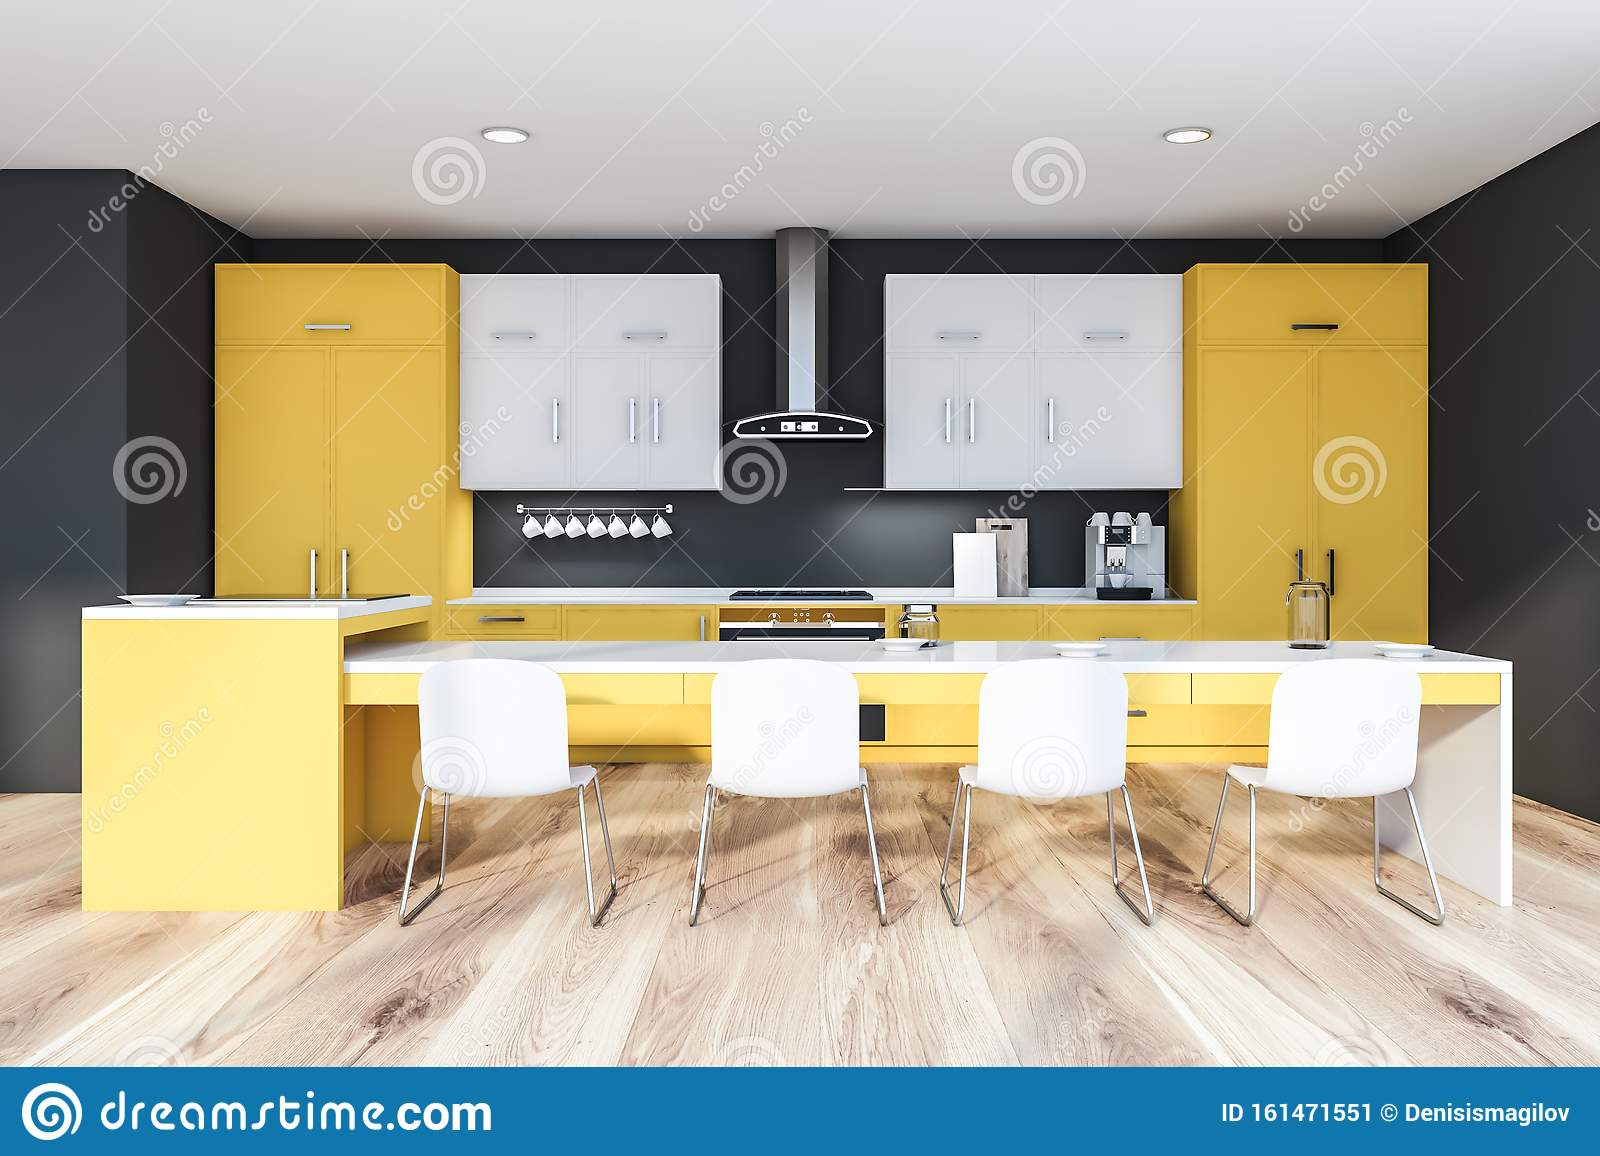 Yellow And Gray Kitchen With Long Table Stock Illustration